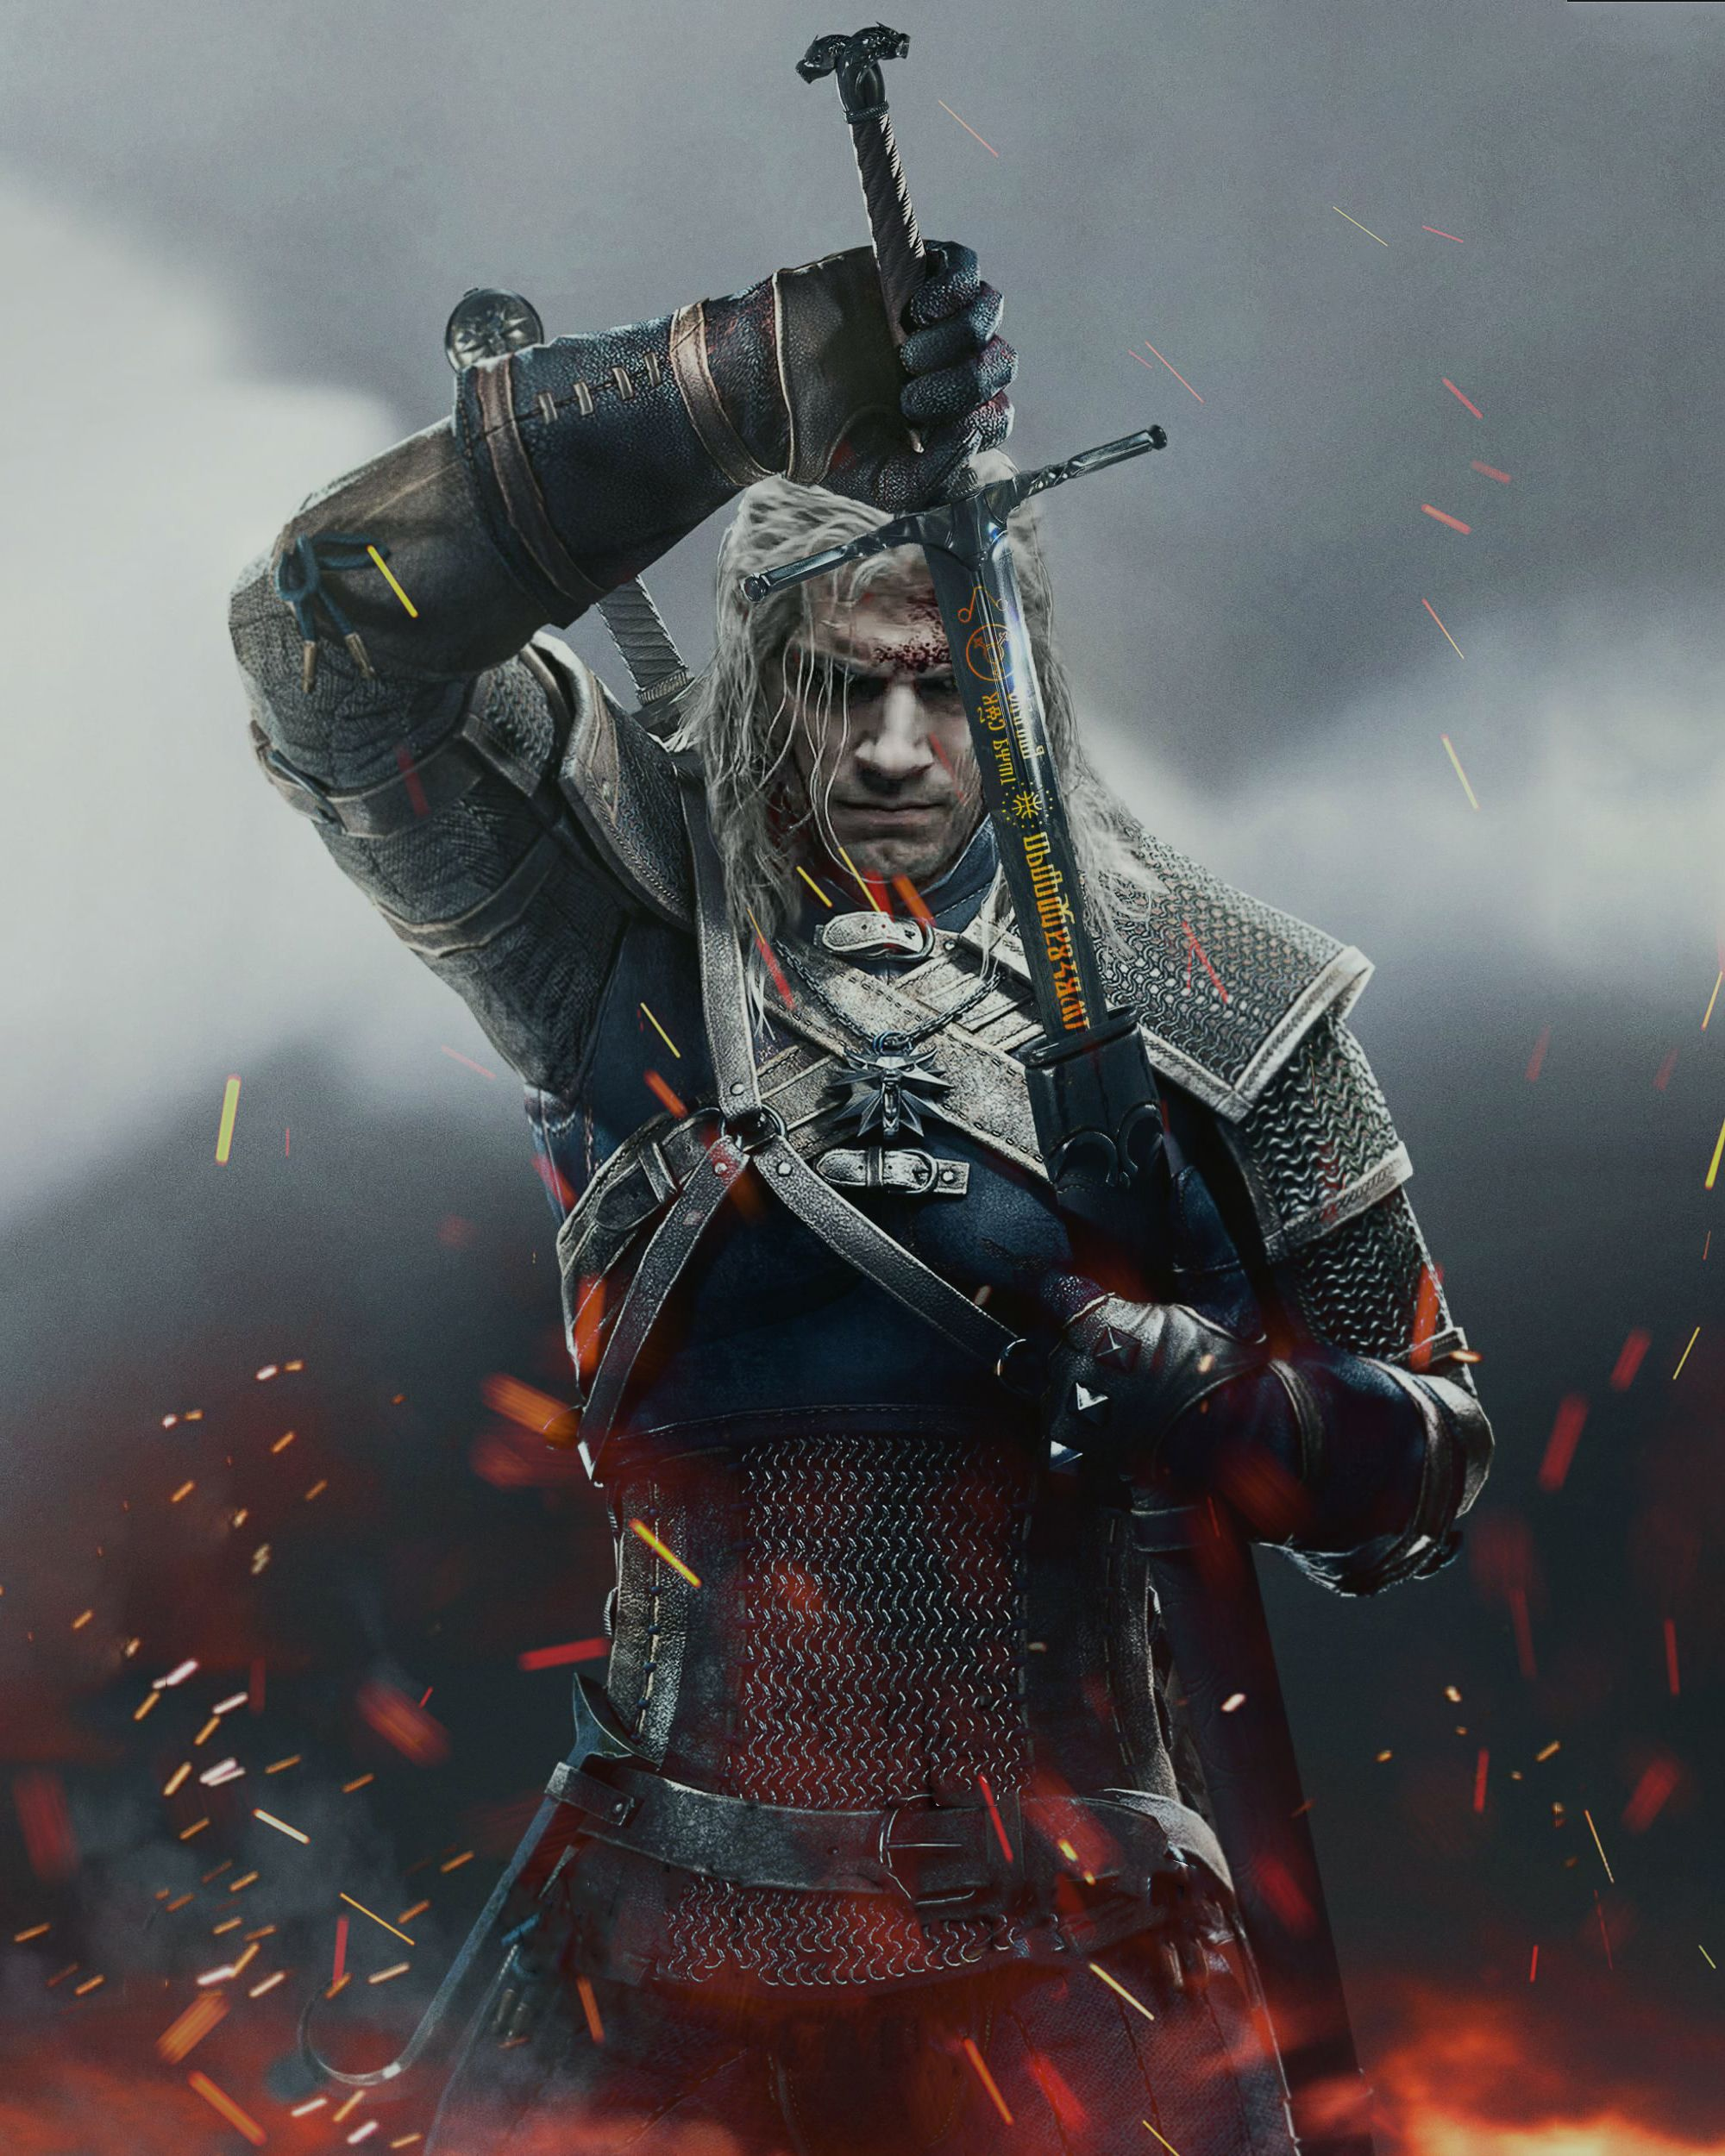 Witcher Hd Android Wallpapers Wallpaper Cave